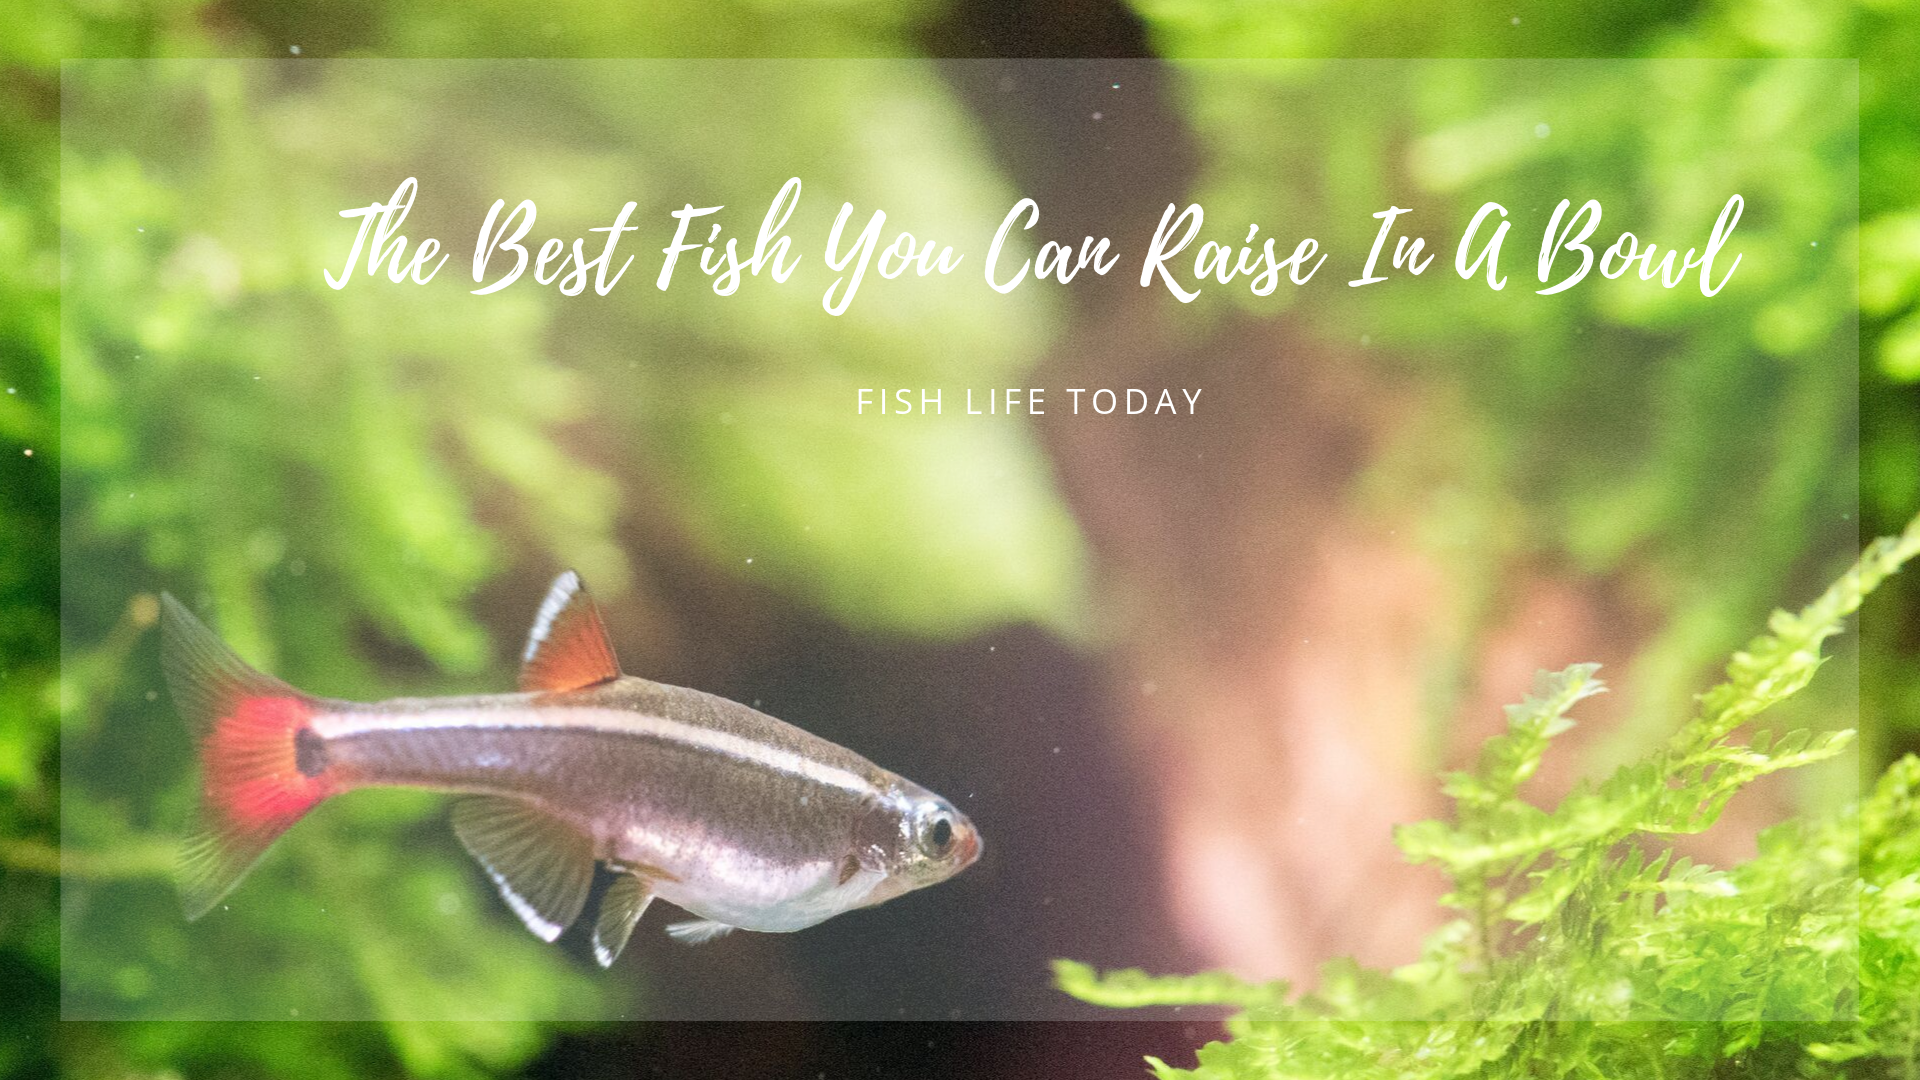 The Best Fish You Can Raise In A Bowl